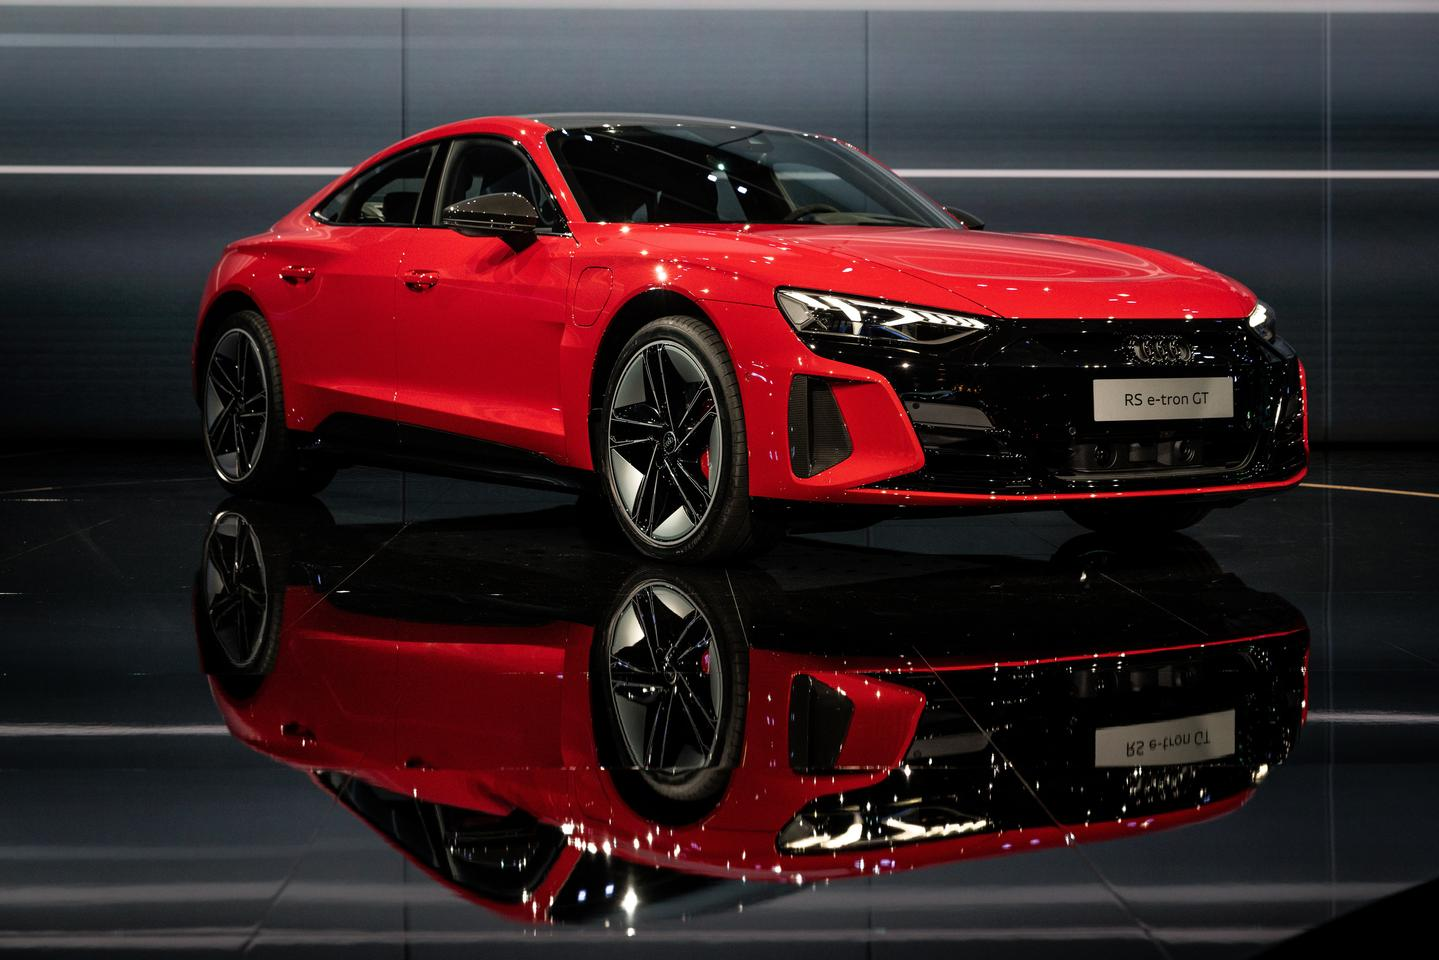 The Audi RS etron GT makes its world premiere at the Celebration of Progress digital event